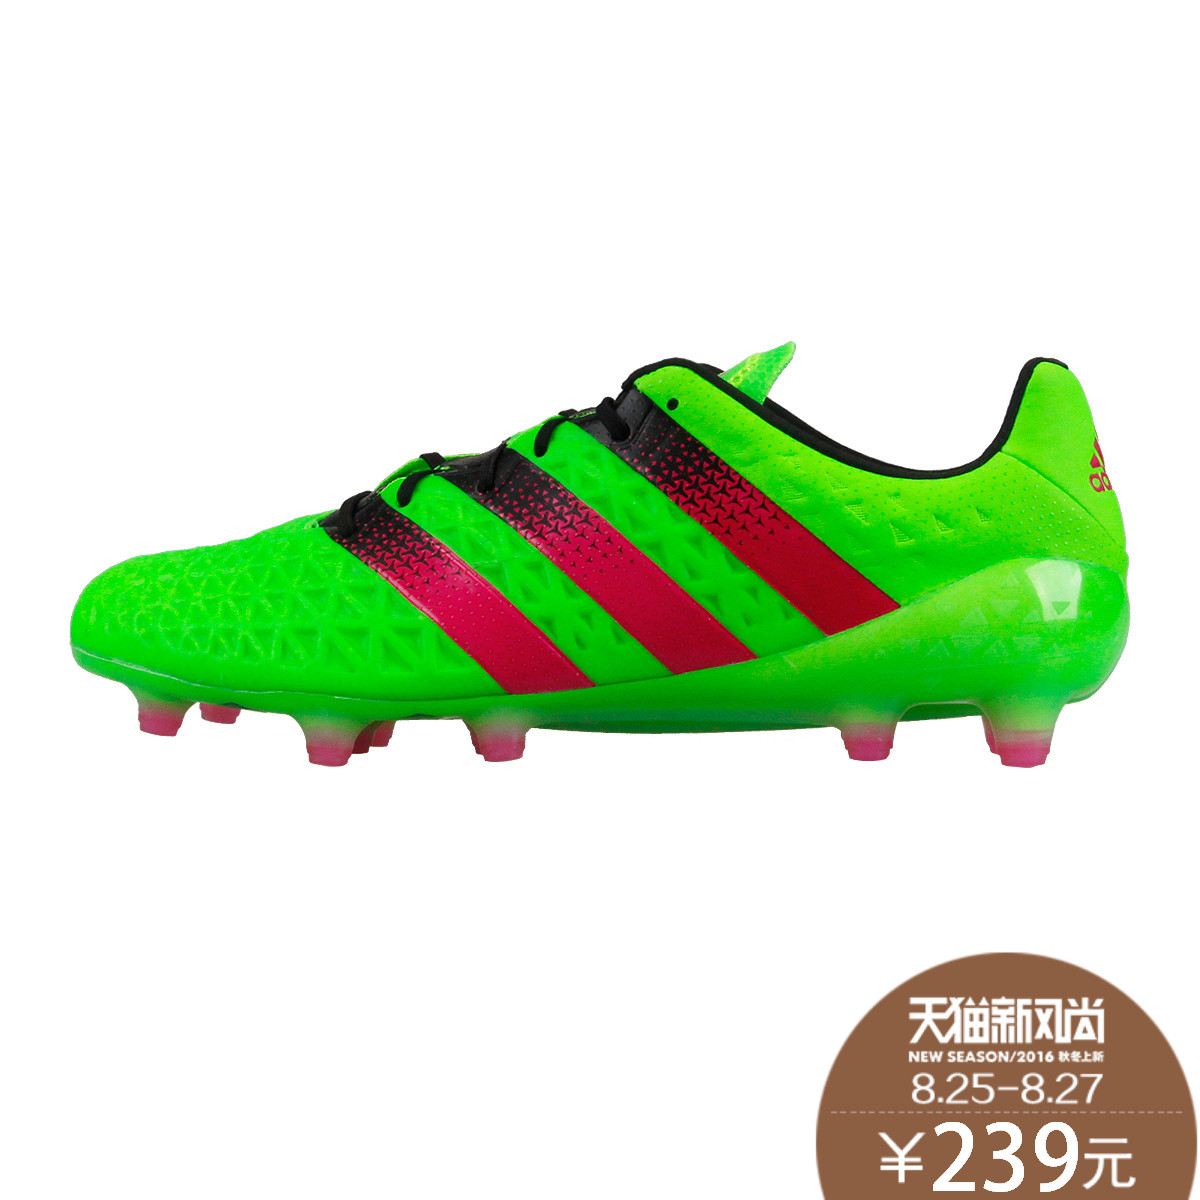 7872e35bd810 Buy New adidas/adidas X15.1 fg/ag training game mix nail spike soccer shoes  men in Cheap Price on Alibaba.com